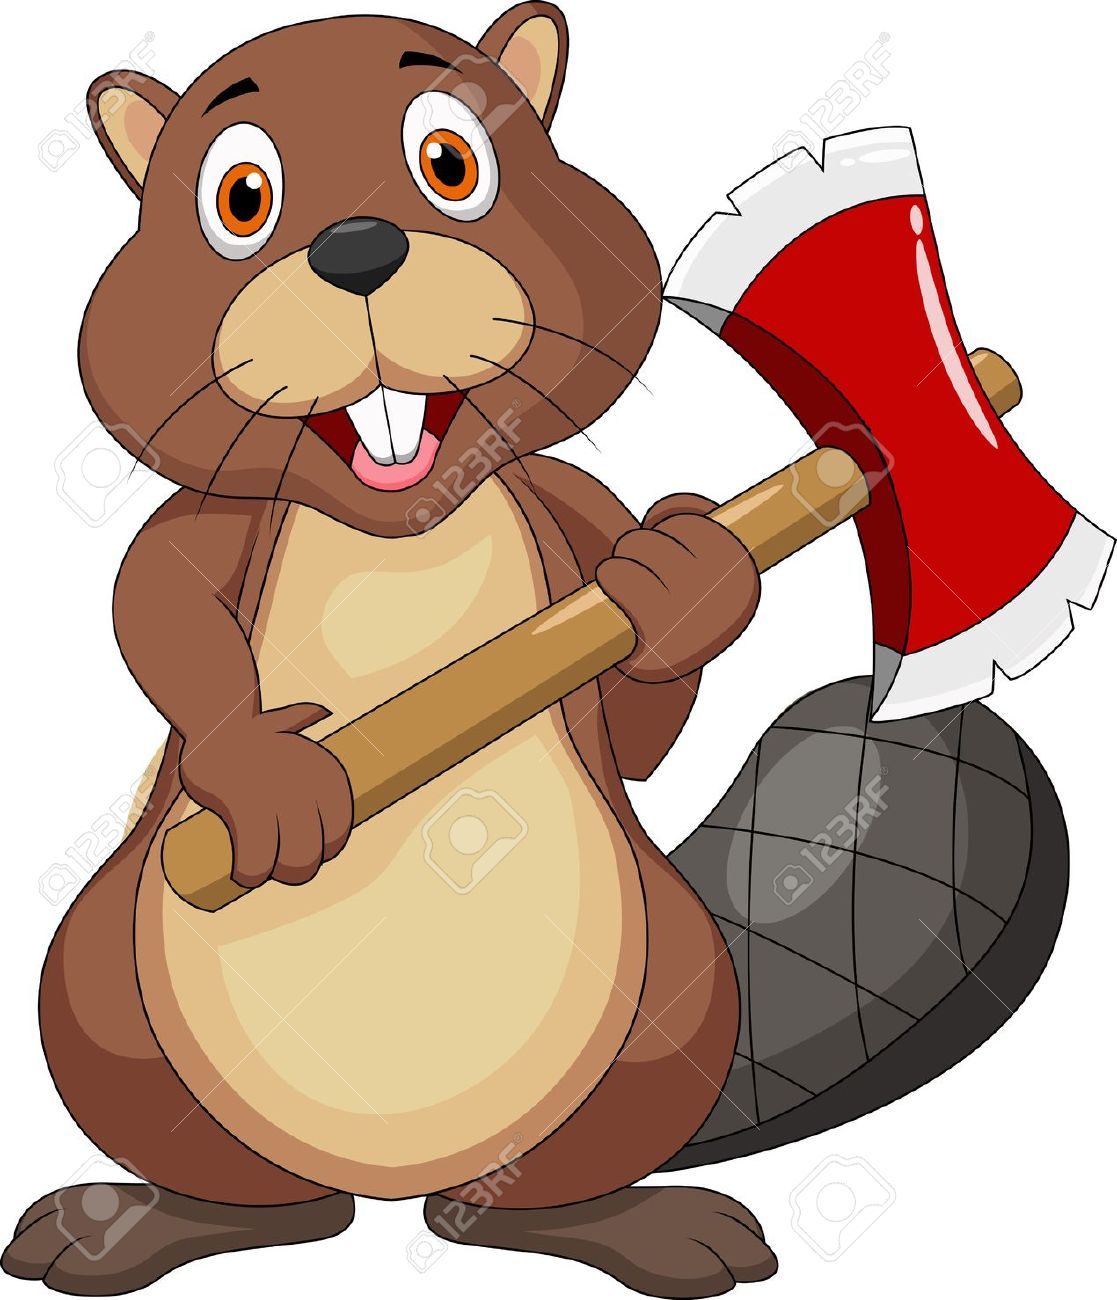 Beaver clipart funny Clipart #3 clipart Download Download